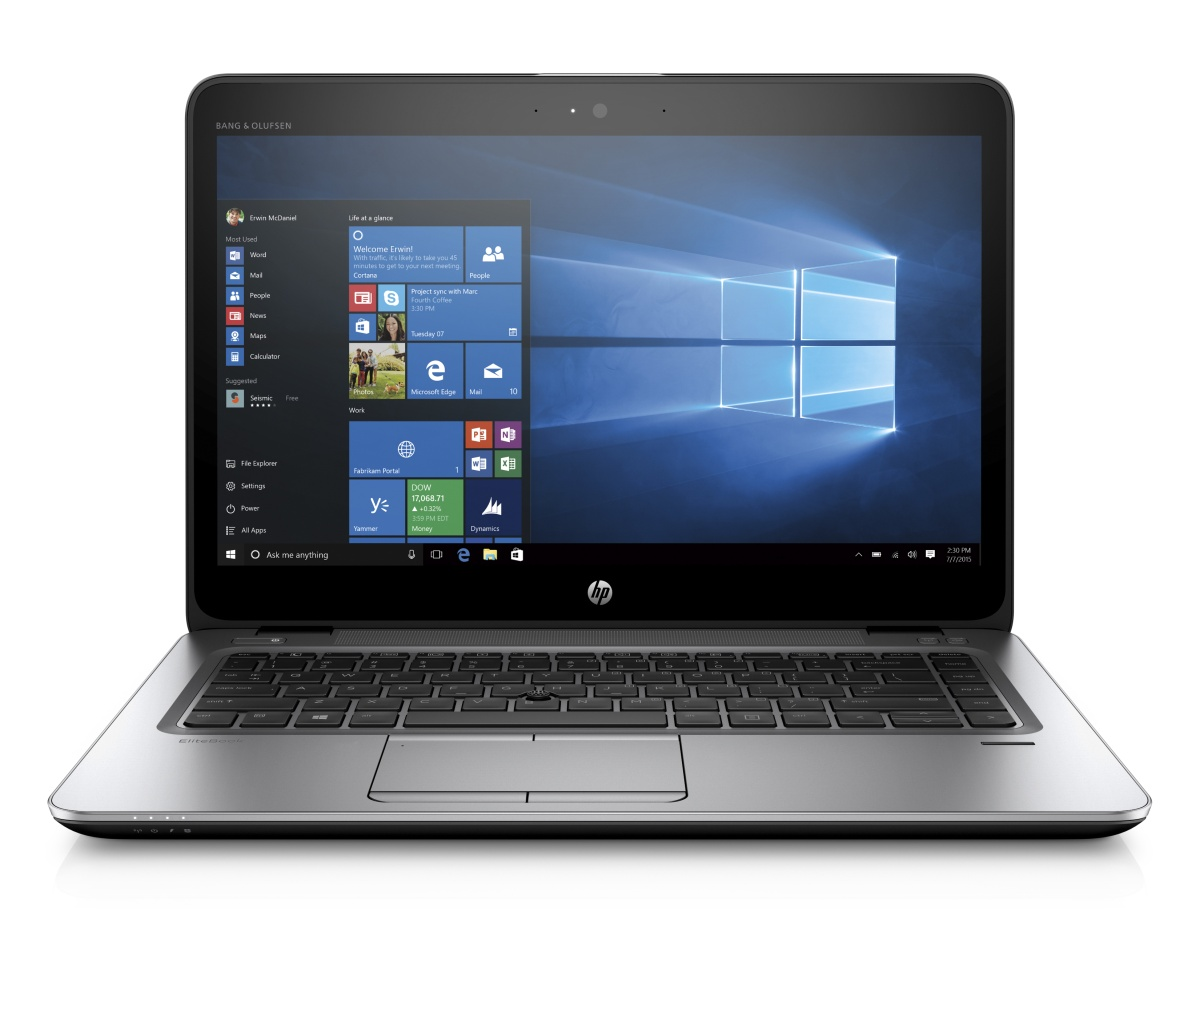 "HP EliteBook 840 G3 i7-6500U/8GB/256GB SSD/14"" FHD/ backlit keyb /Win 10 Pro downgraded"